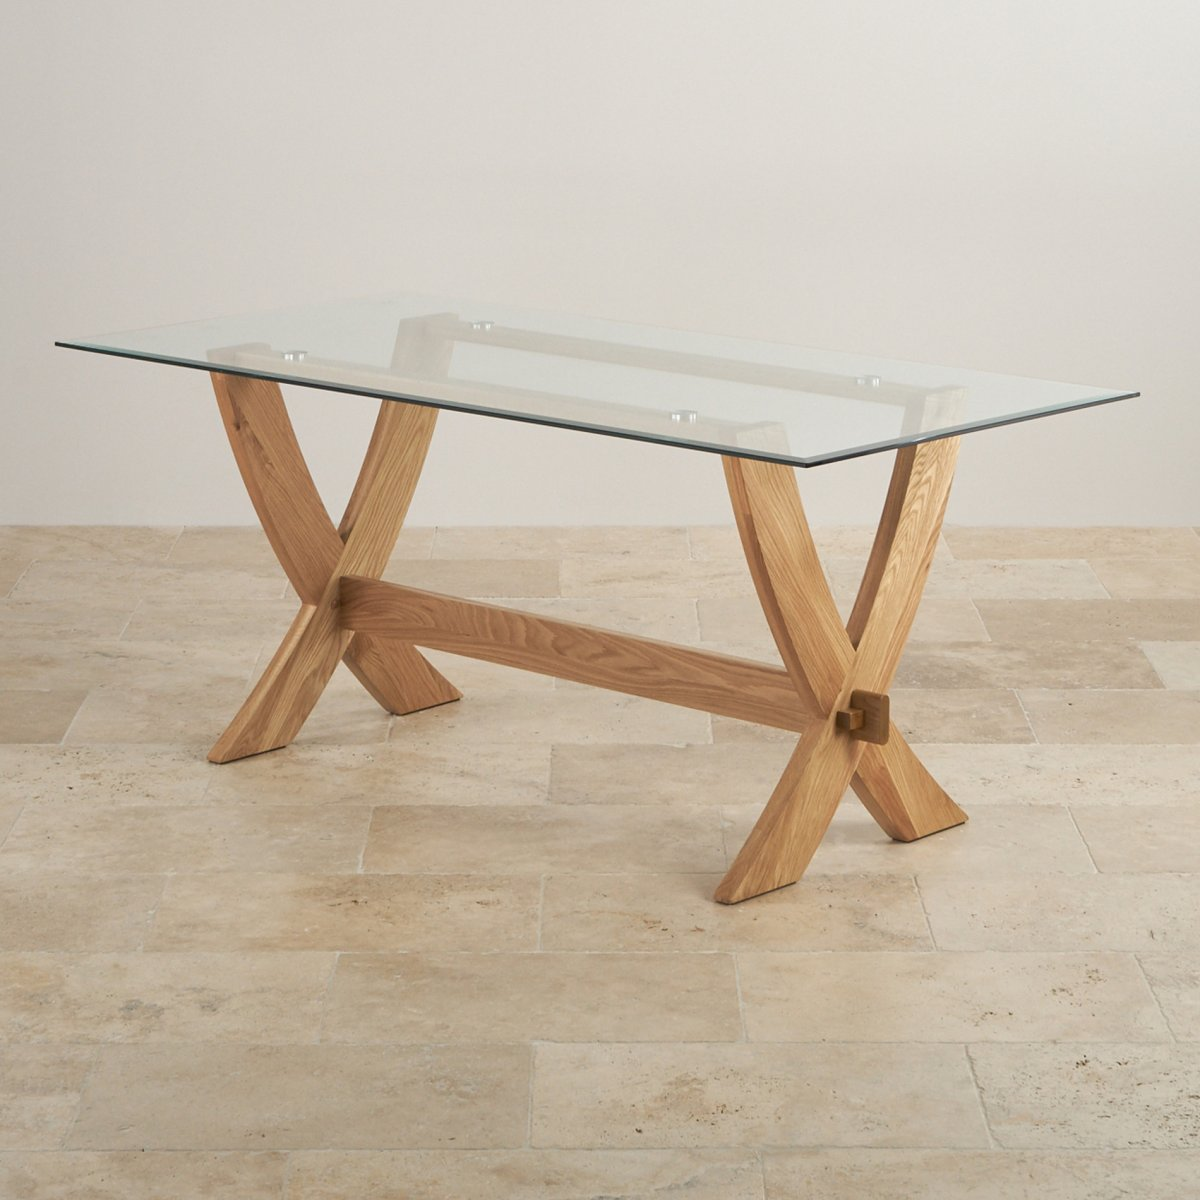 Reflection Crossed Leg Dining Table with Glass Top in  : reflection 6ft x 3ft glass top and natural solid oak crossed leg dining table 573de47badd3b96c215641e673182e467d9ea91743c0c from www.oakfurnitureland.co.uk size 1200 x 1200 jpeg 141kB